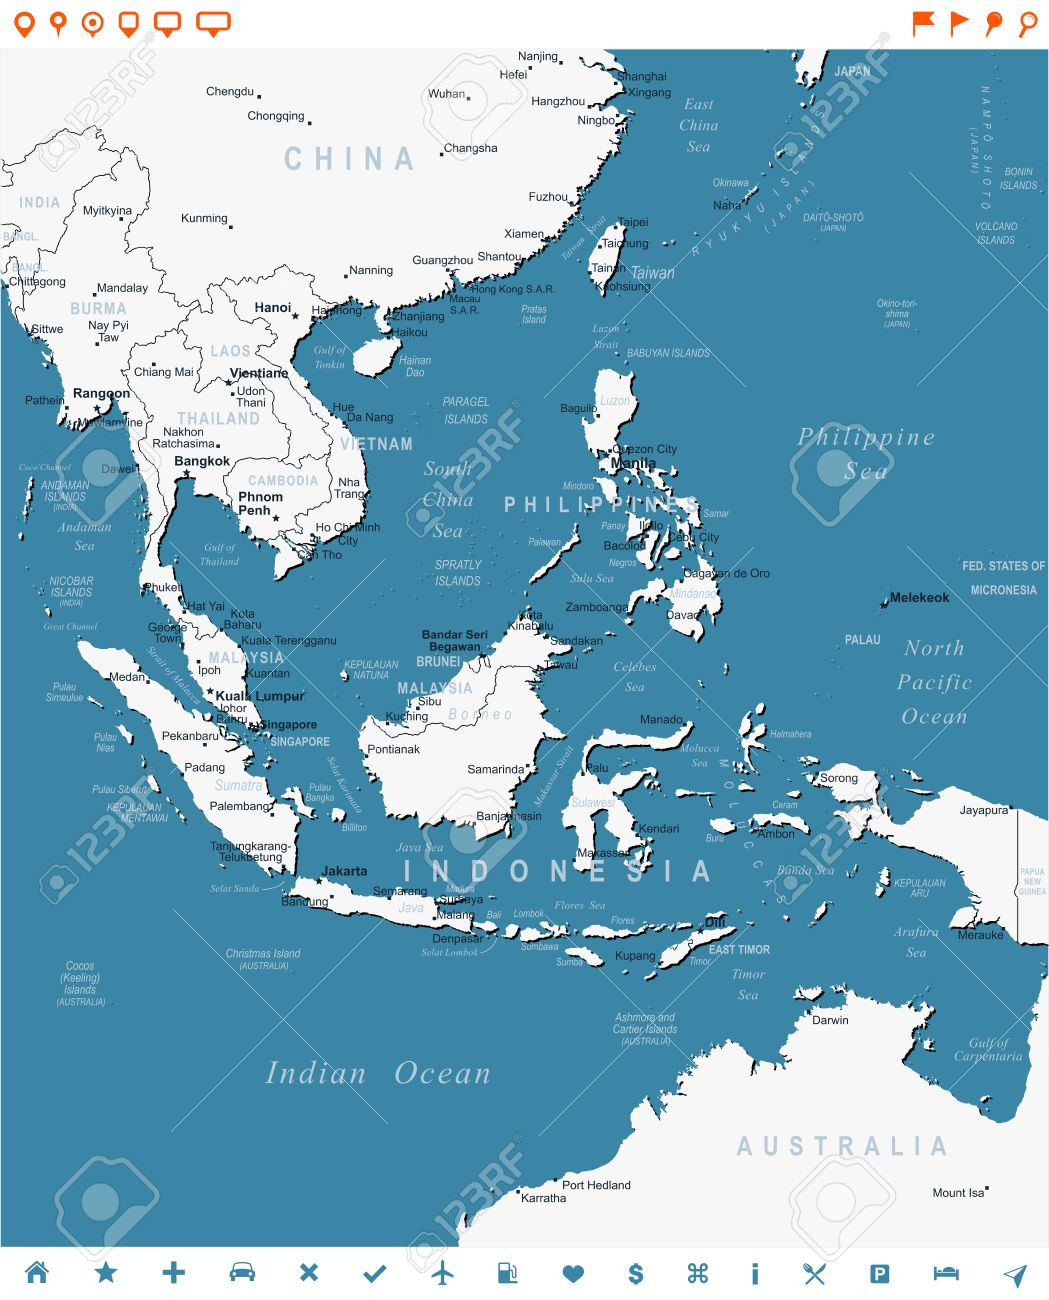 Southeast Asia Map And Navigation Labels Illustration Royalty